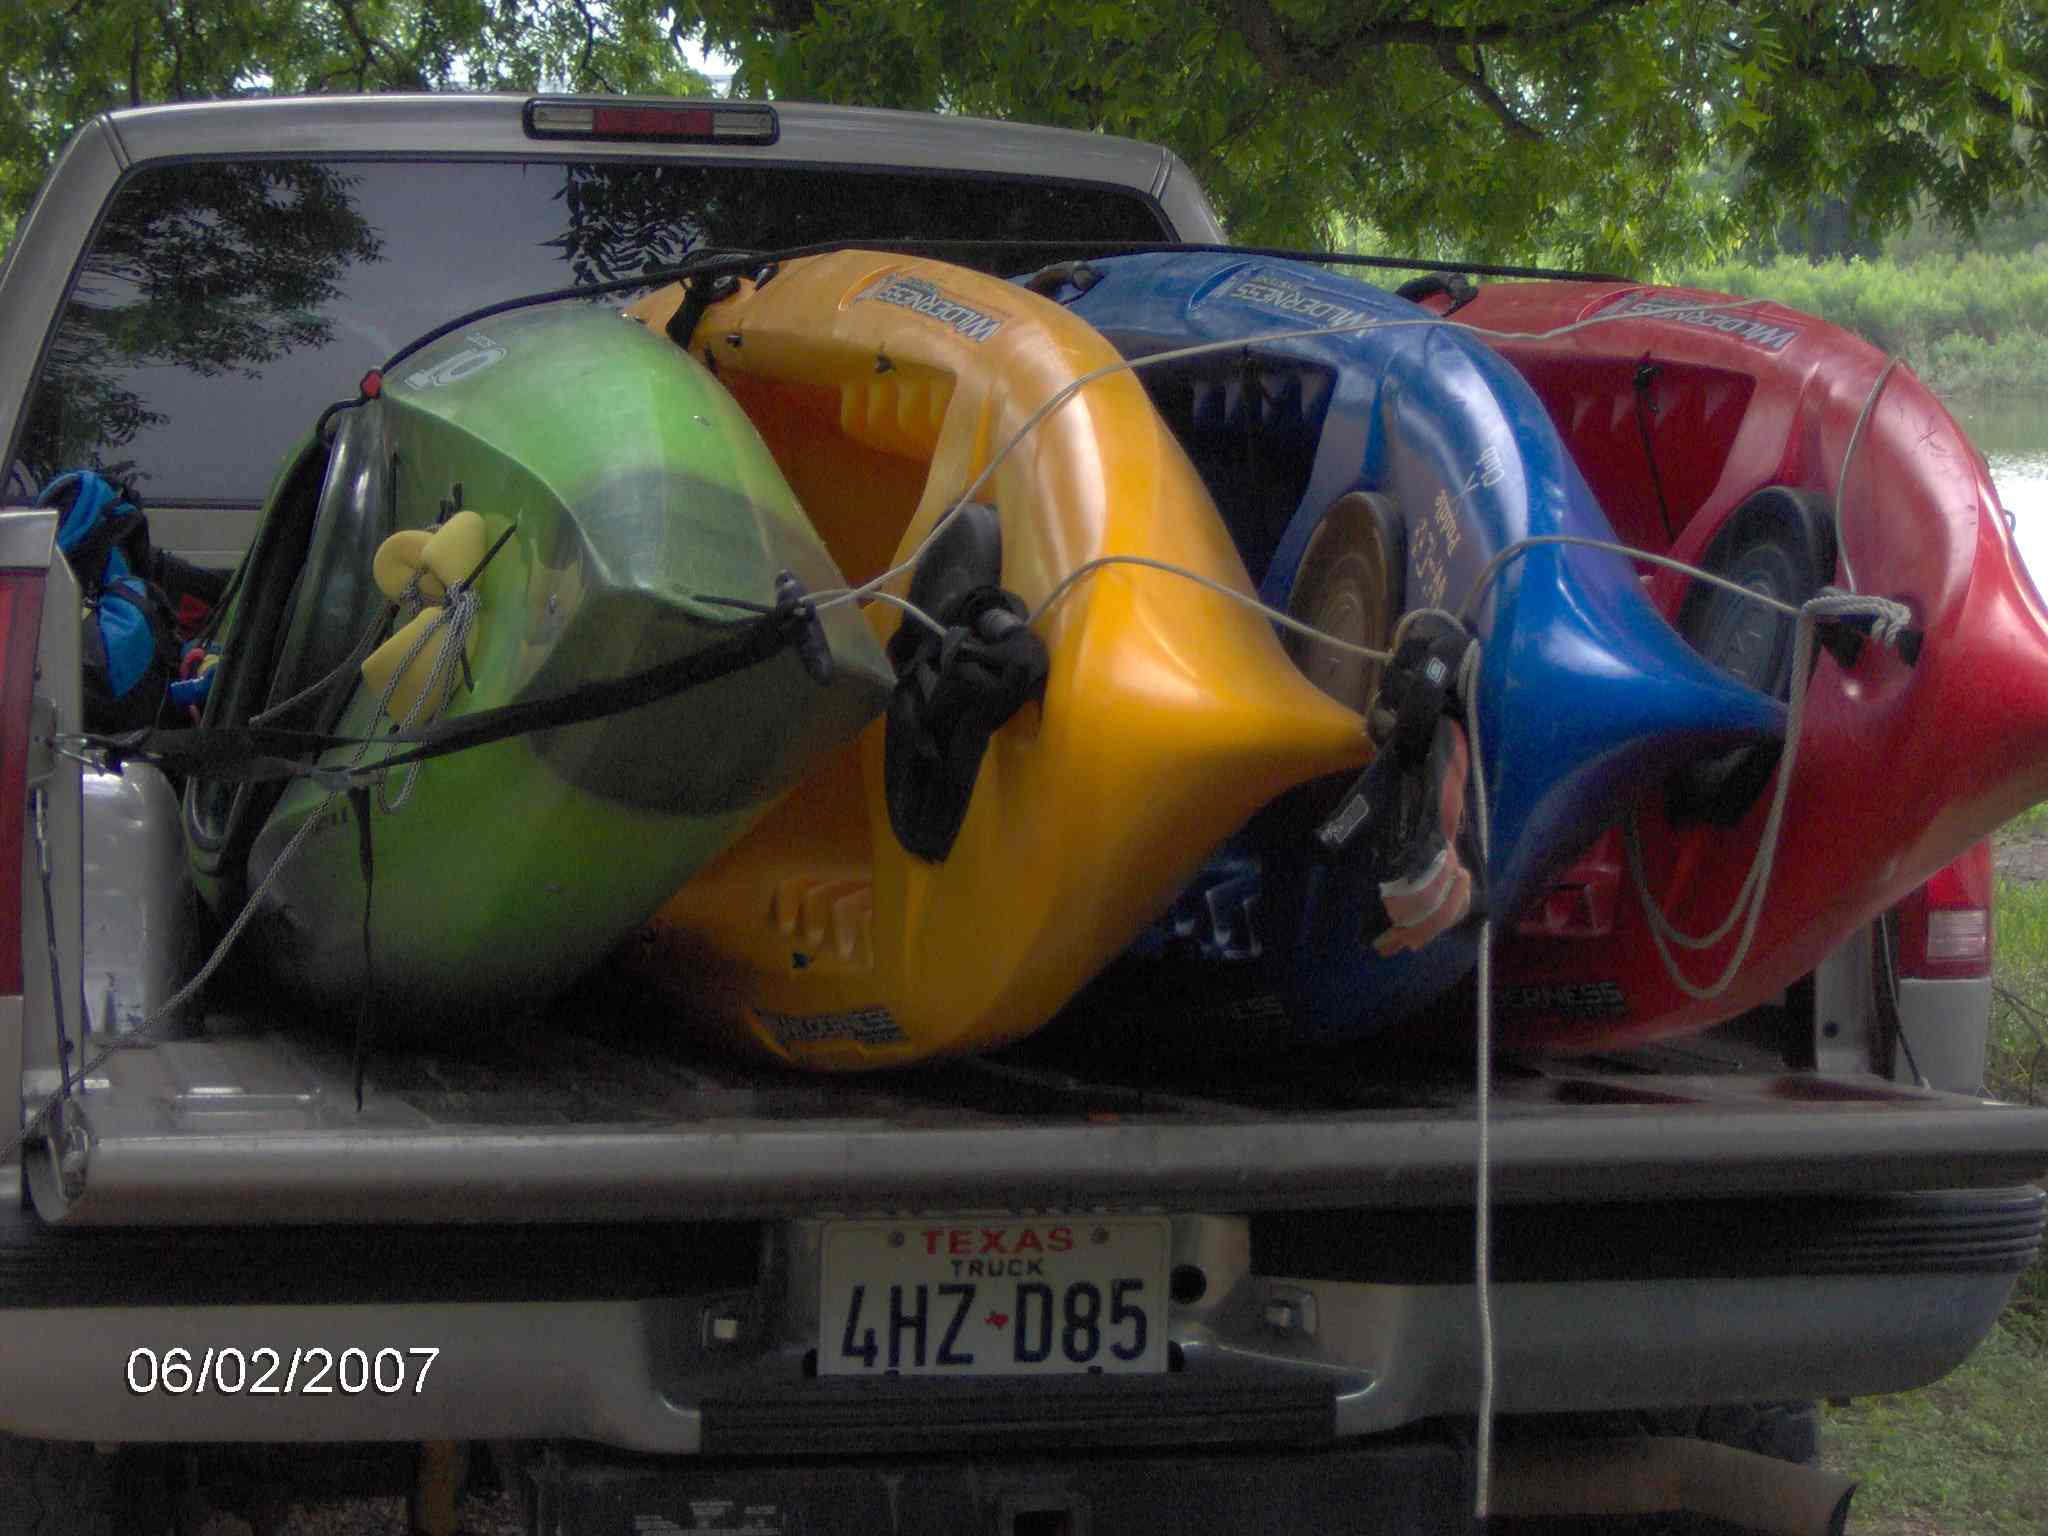 ideas for transporting 4 kayaks and gear